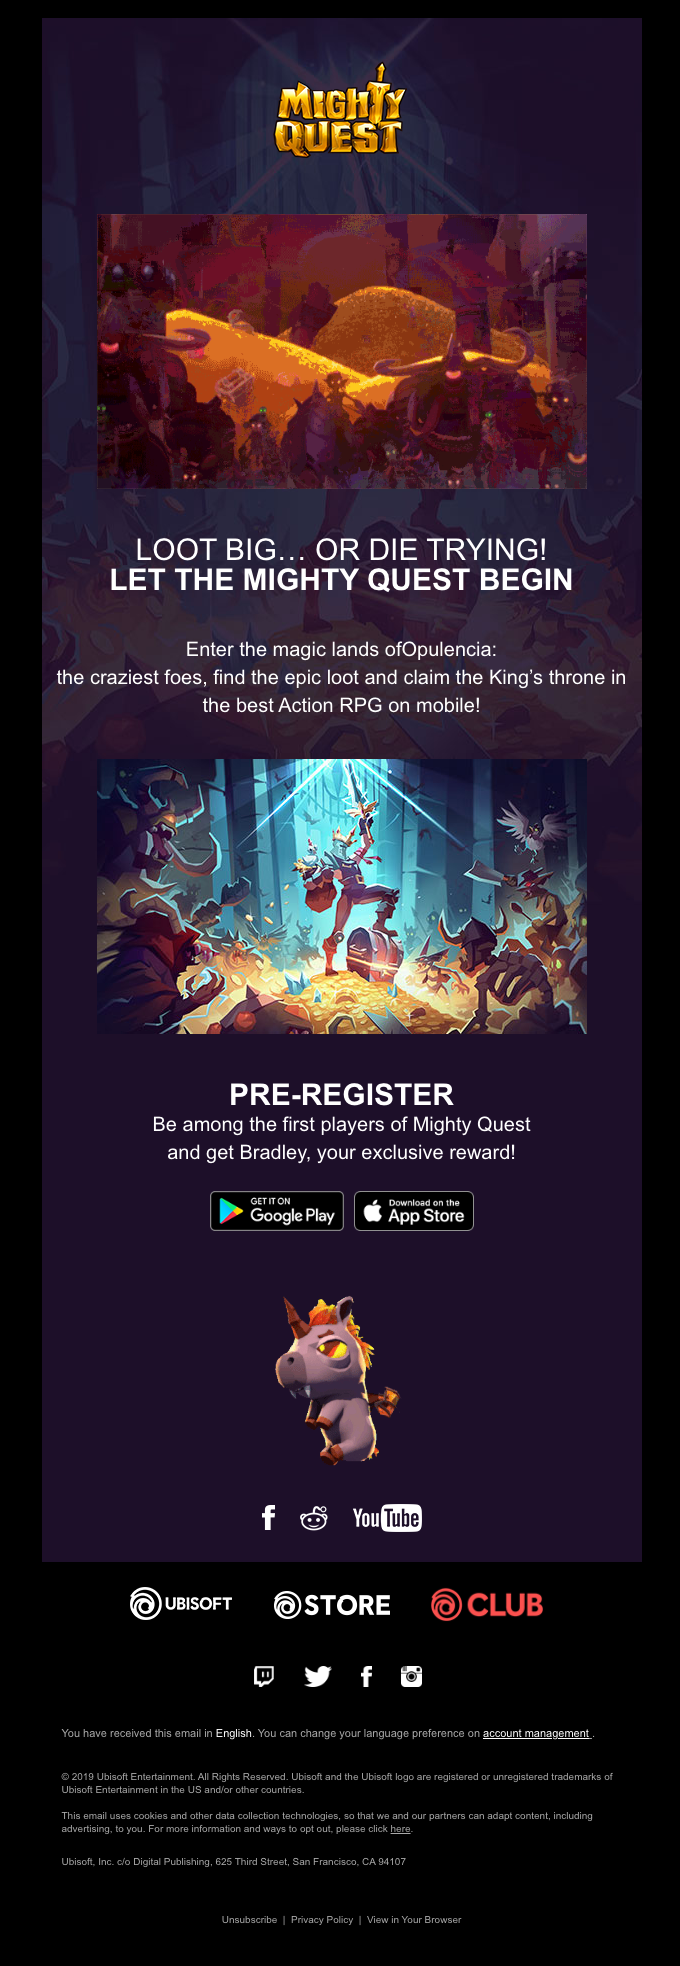 Be one of the first to play MIGHTY QUEST on mobile